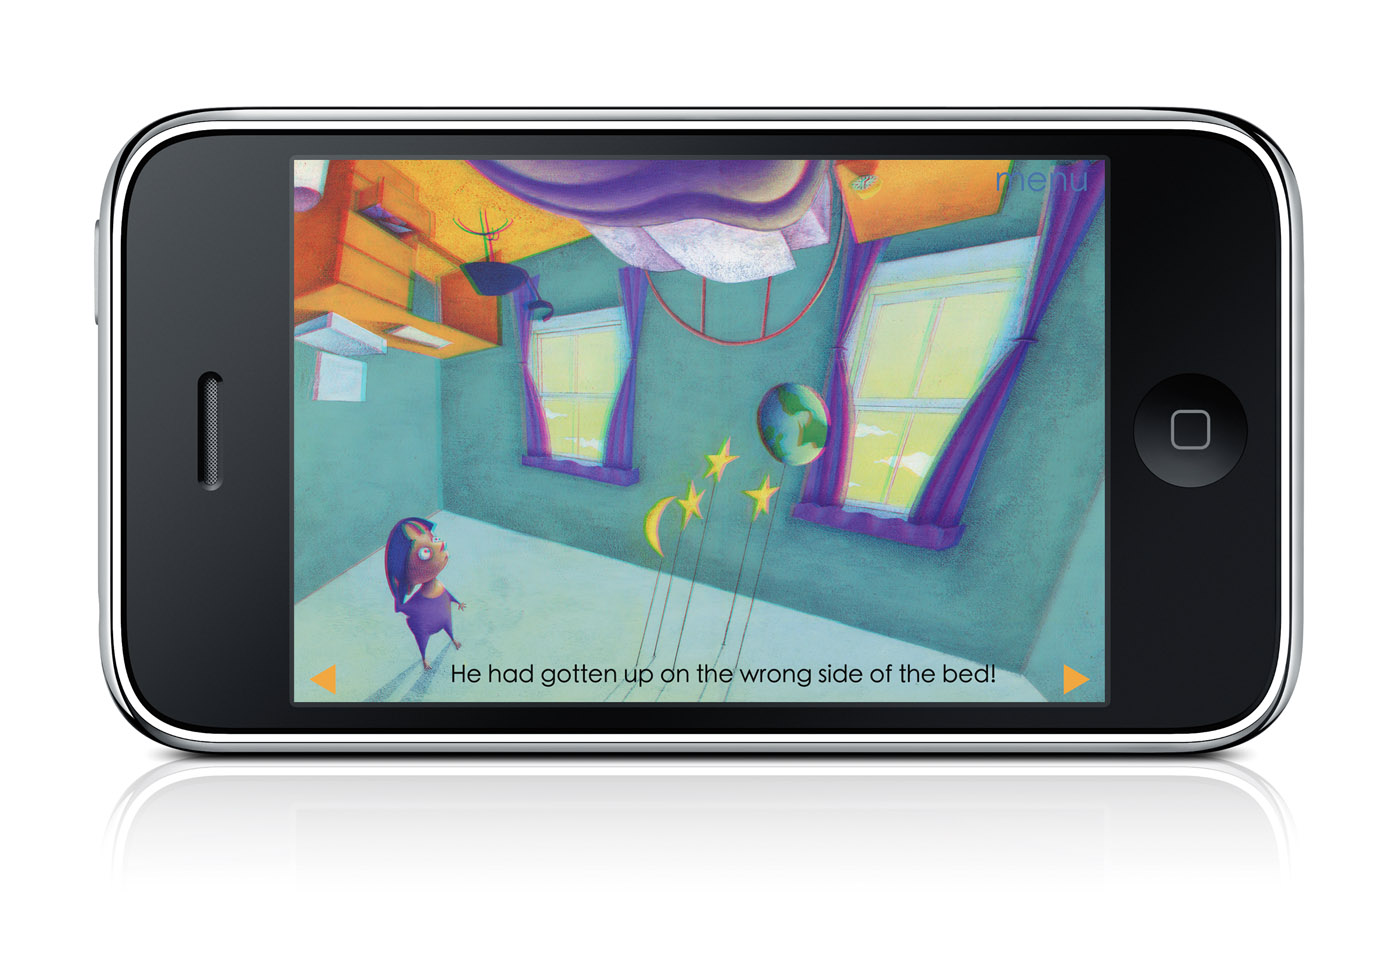 First 3D Storybook App For IPad And IPhone, 'The Wrong